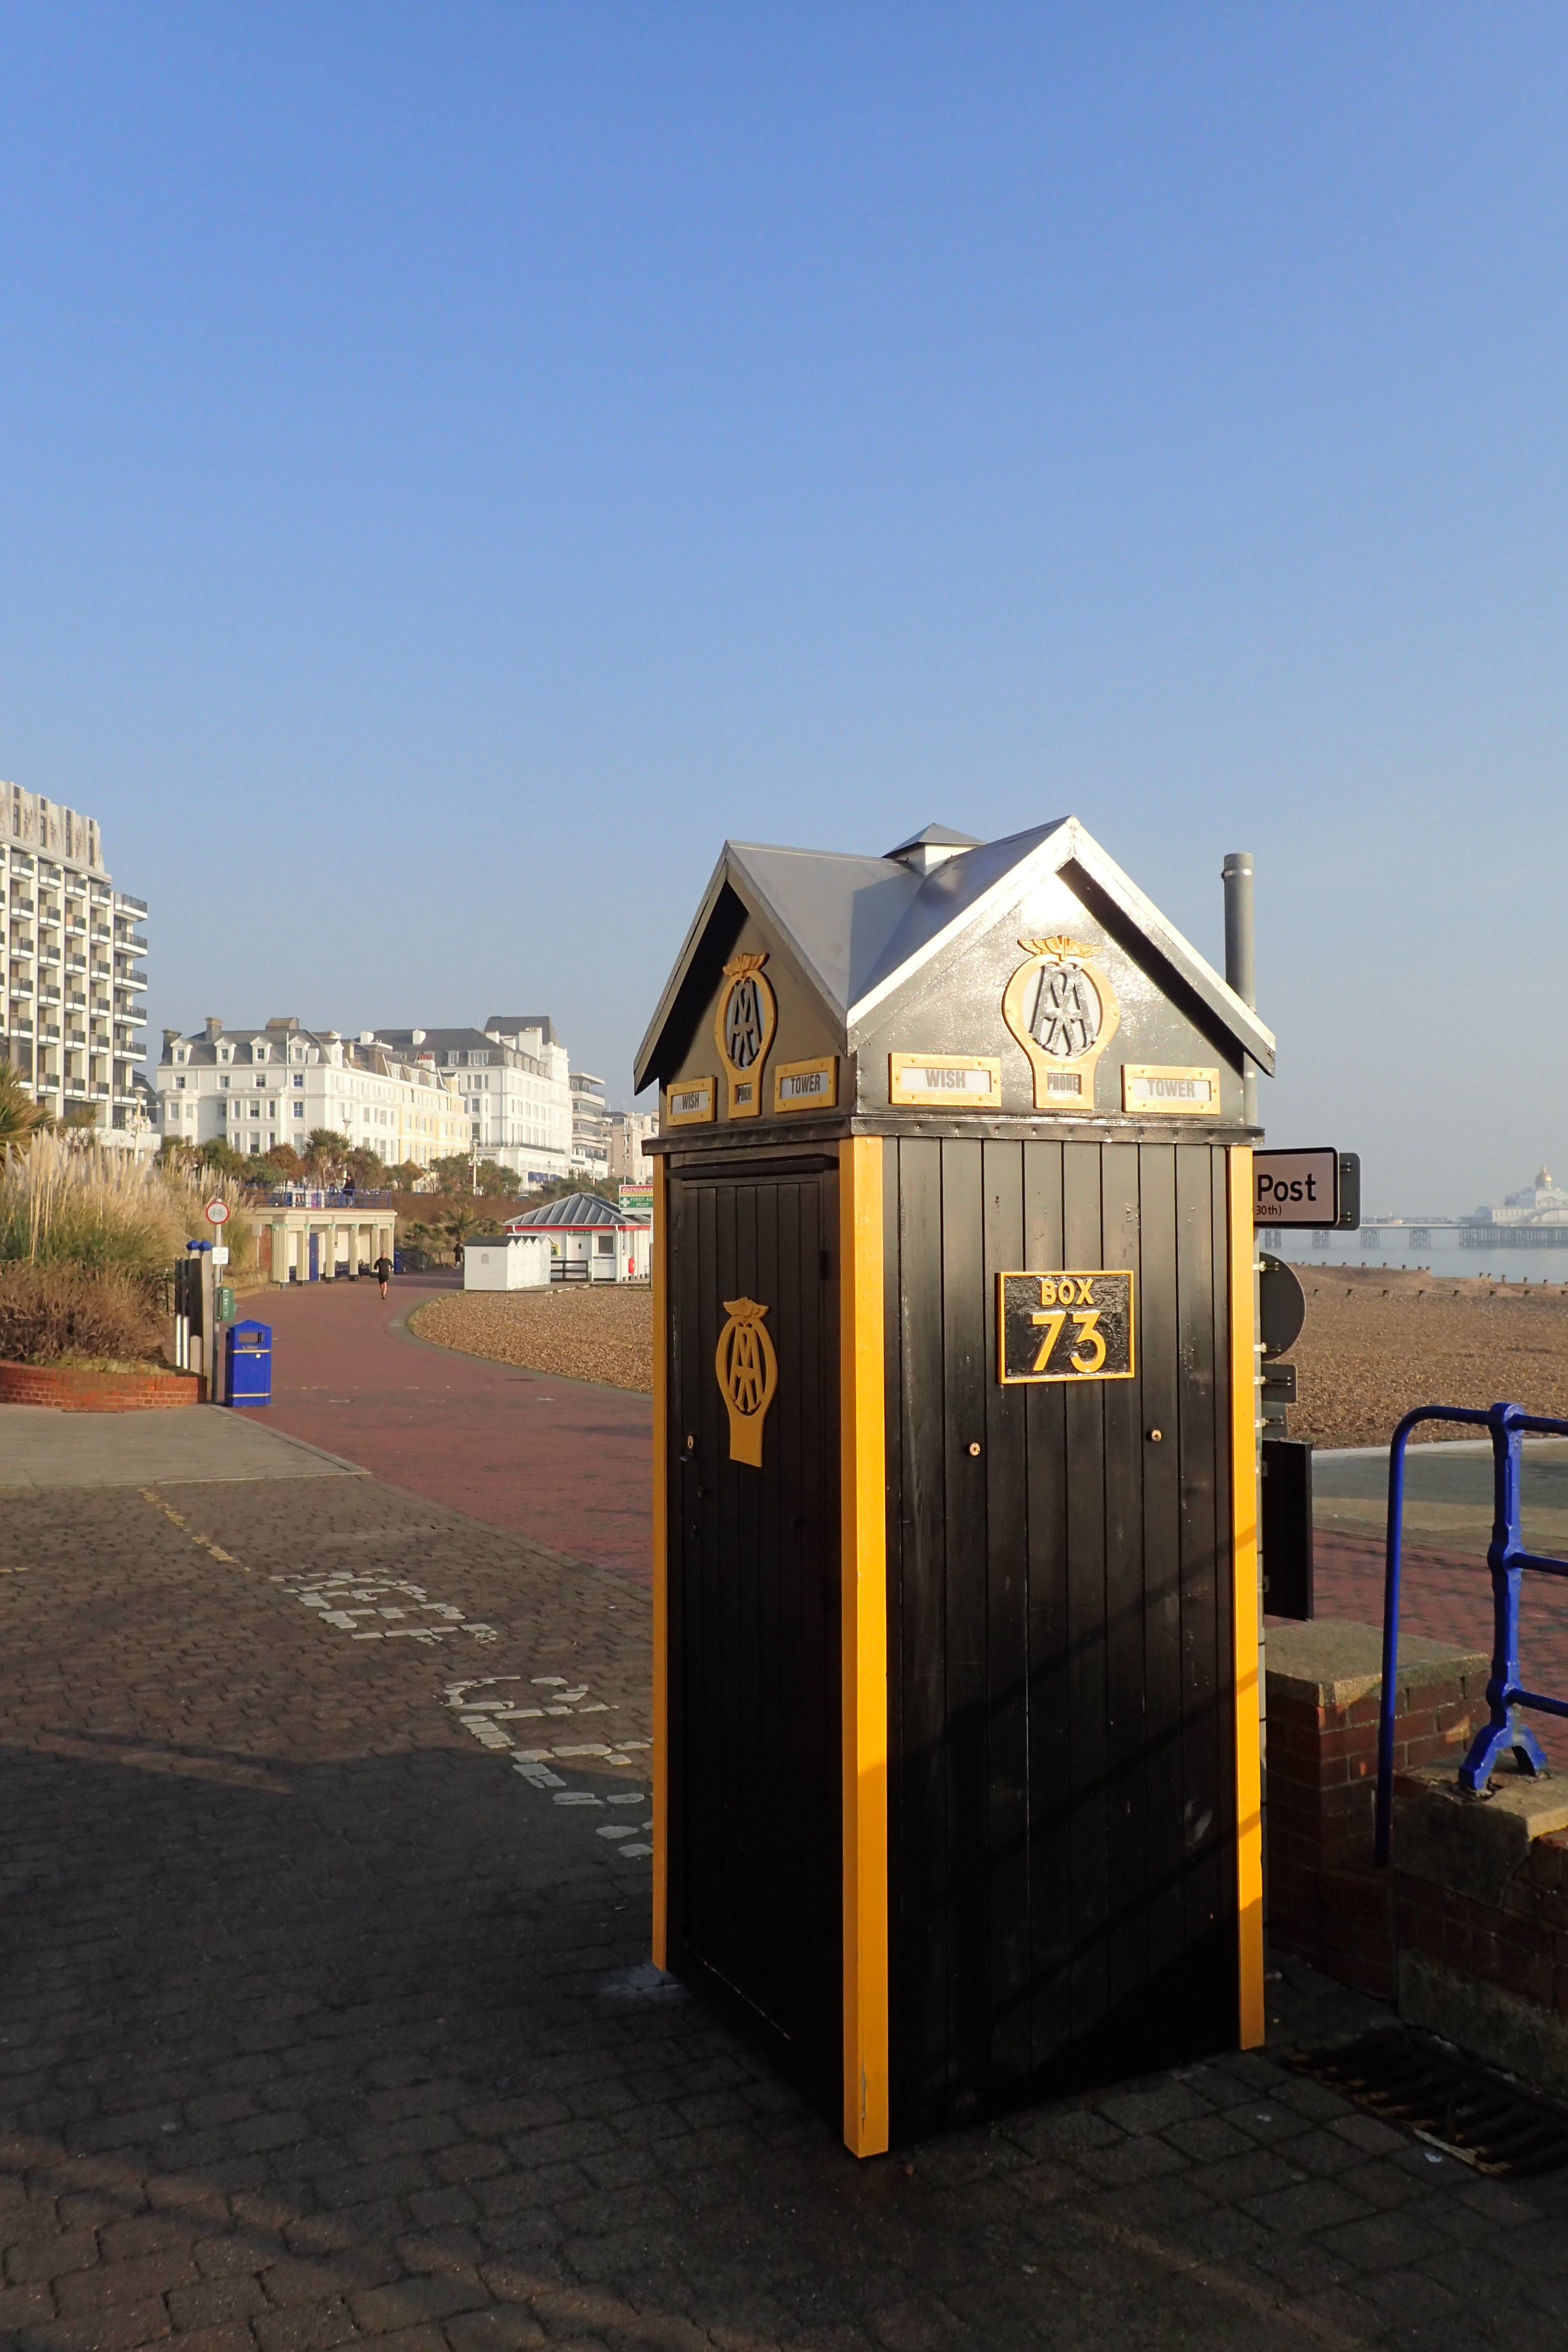 AA kiosk at the start of the Wealdway, Eastbourne